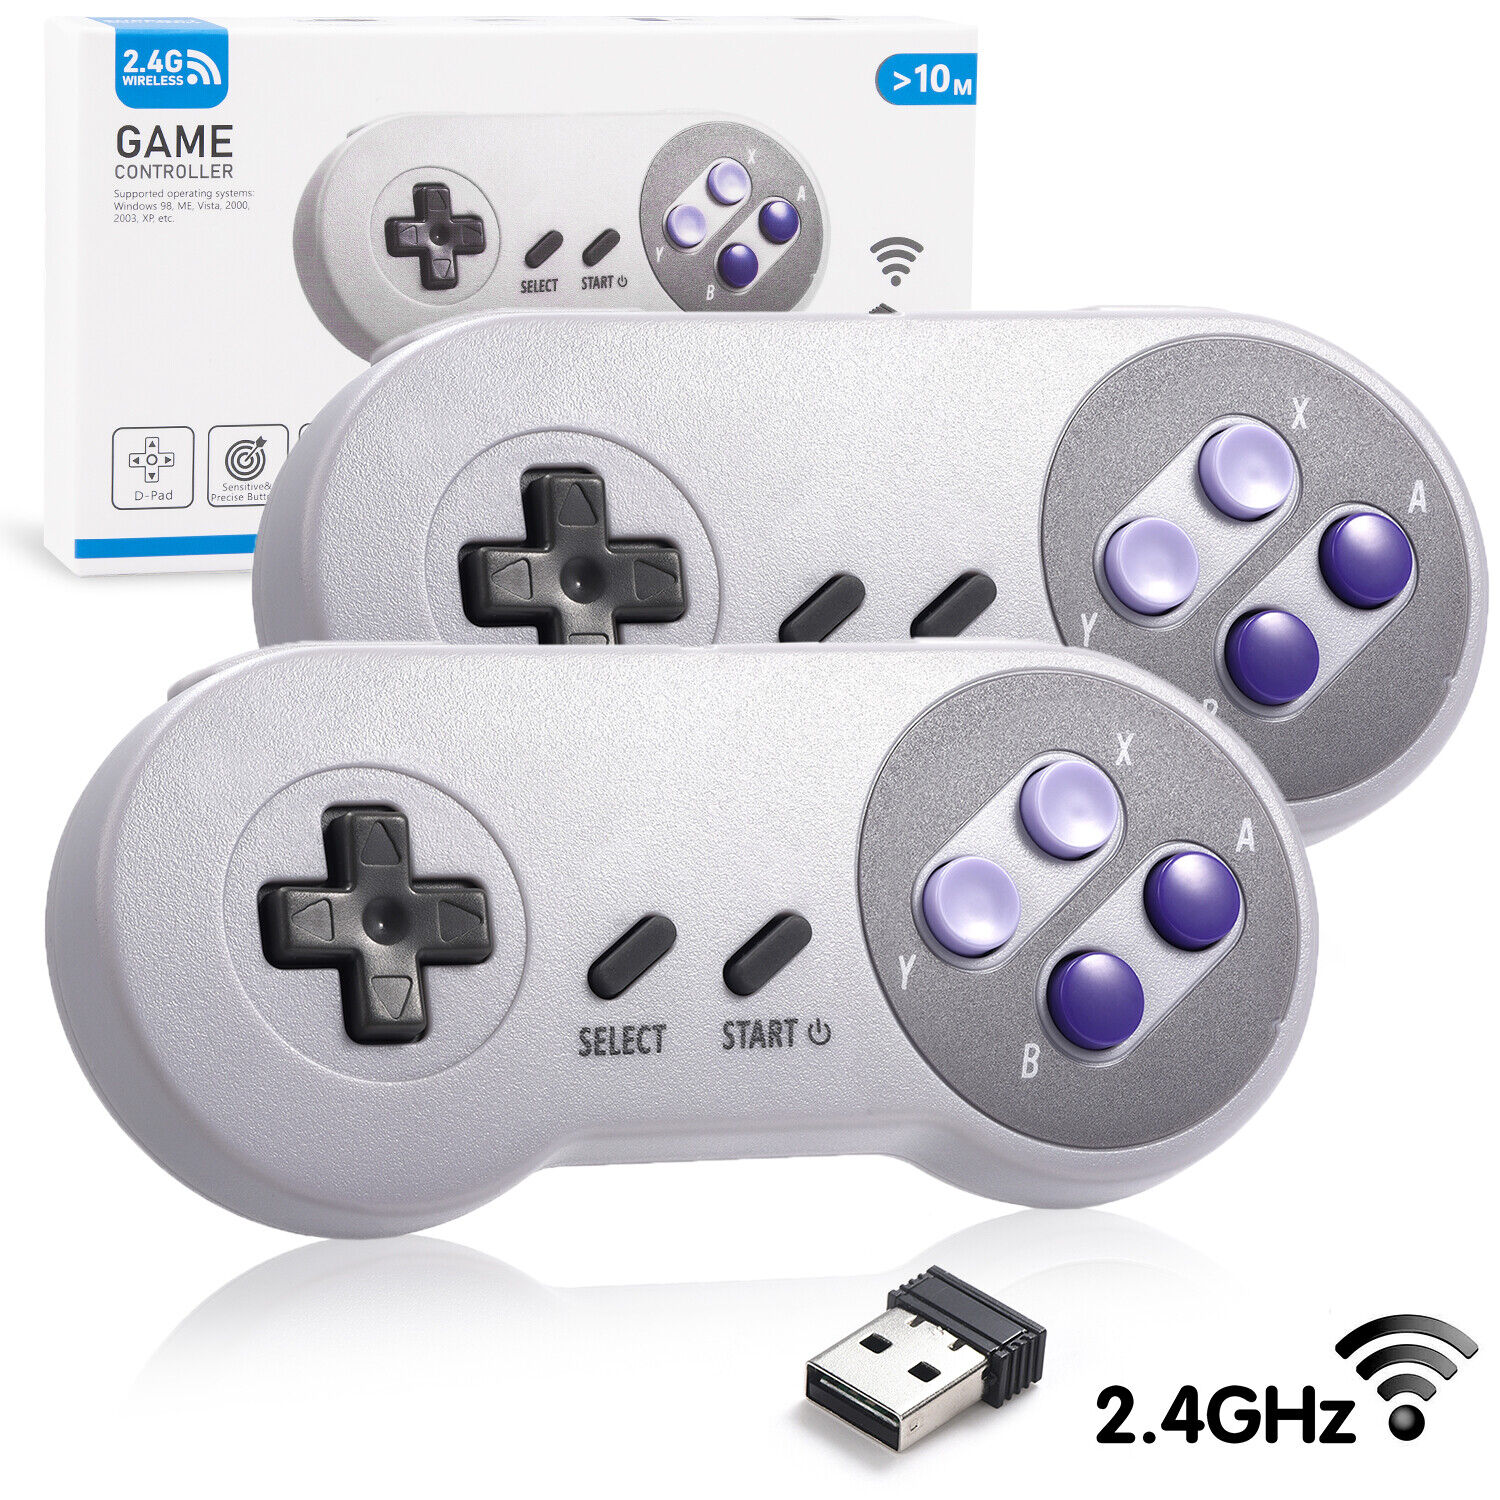 Details about USB PC Game Controller Wireless Classic SNES for Windows 10 7  Mac Raspberry Pi